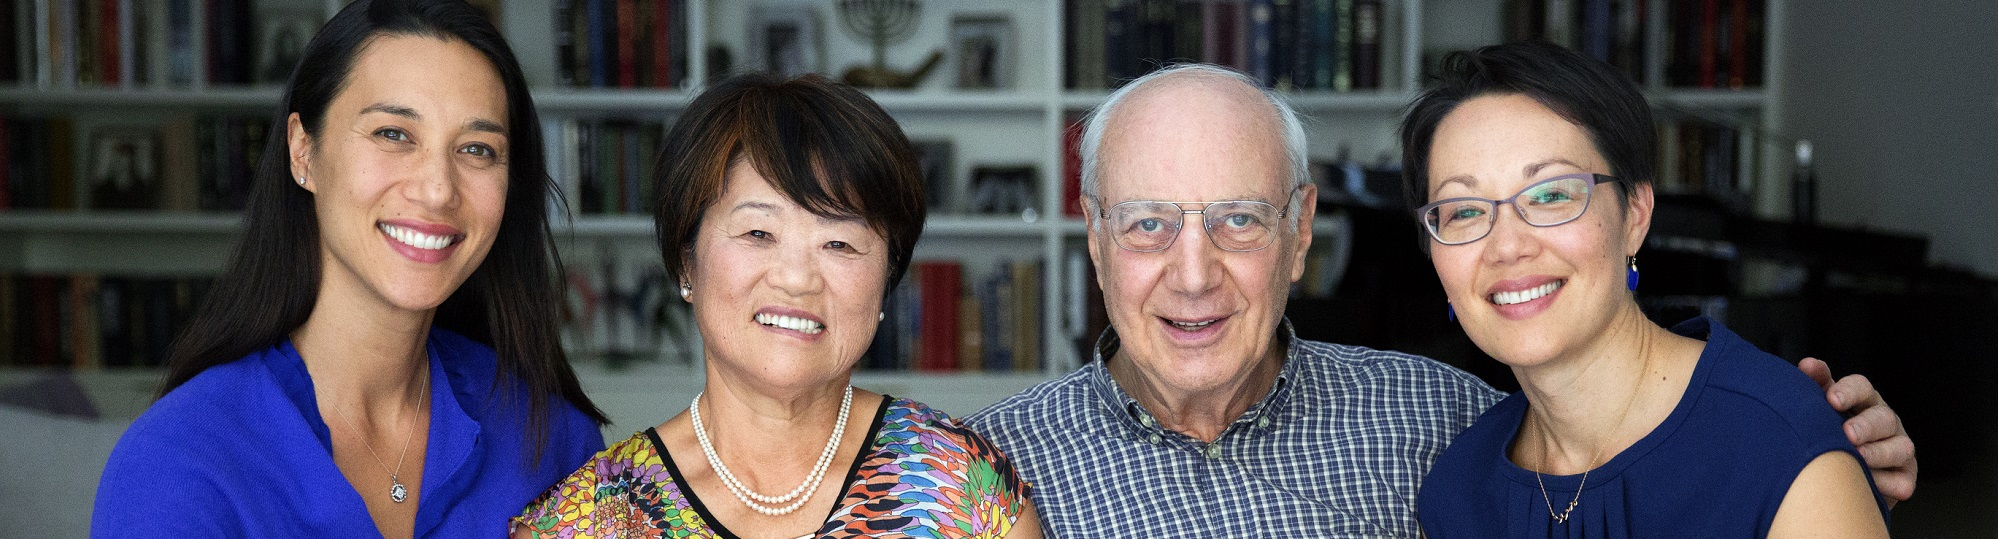 Photo of Rabbi Buchdahl and her family from KoreanAmericanStory.org 's legacy project: Sulja Warnick (Rabbi Buchdahl's mother)